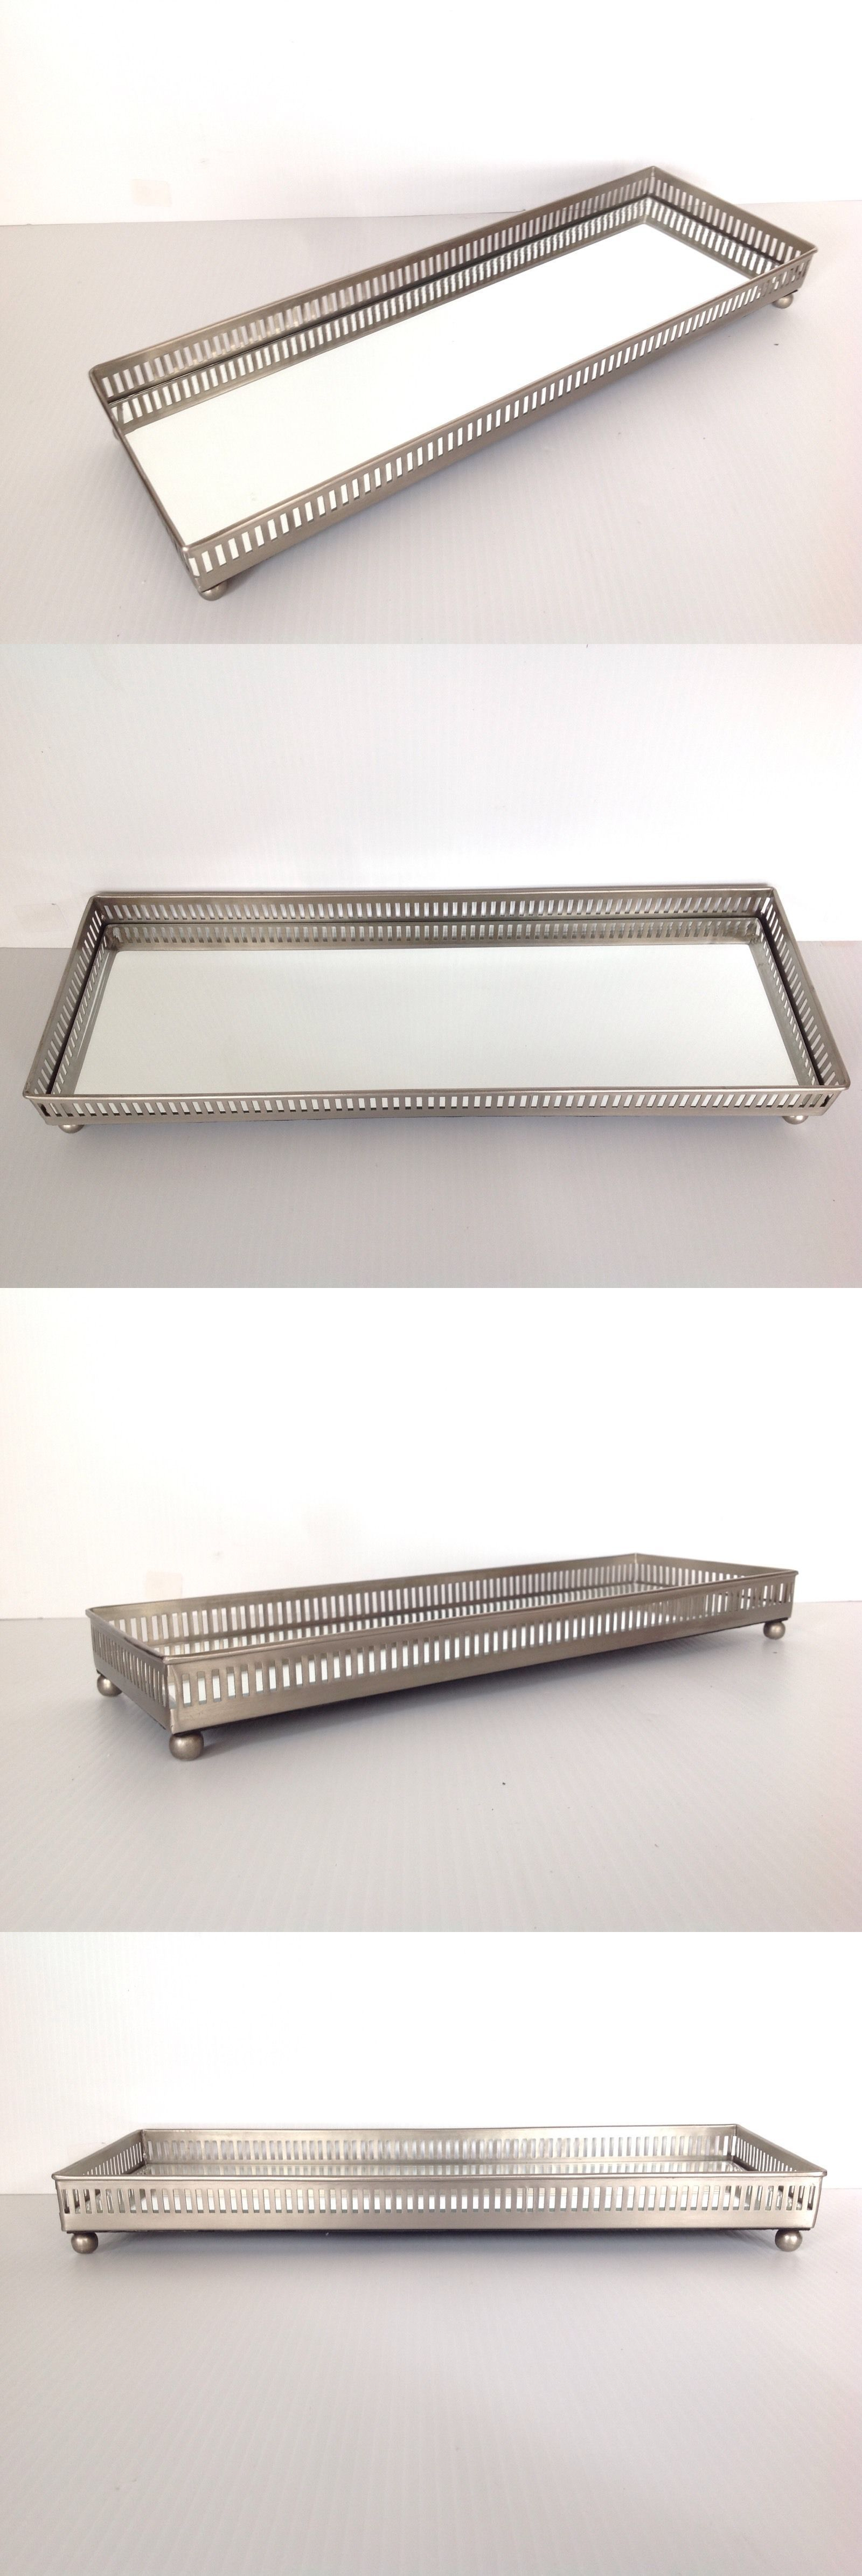 Other Jewelry Organizers 164372 Pottery Barn Mirrored Dresser Top Tray Large Size Sold Out At